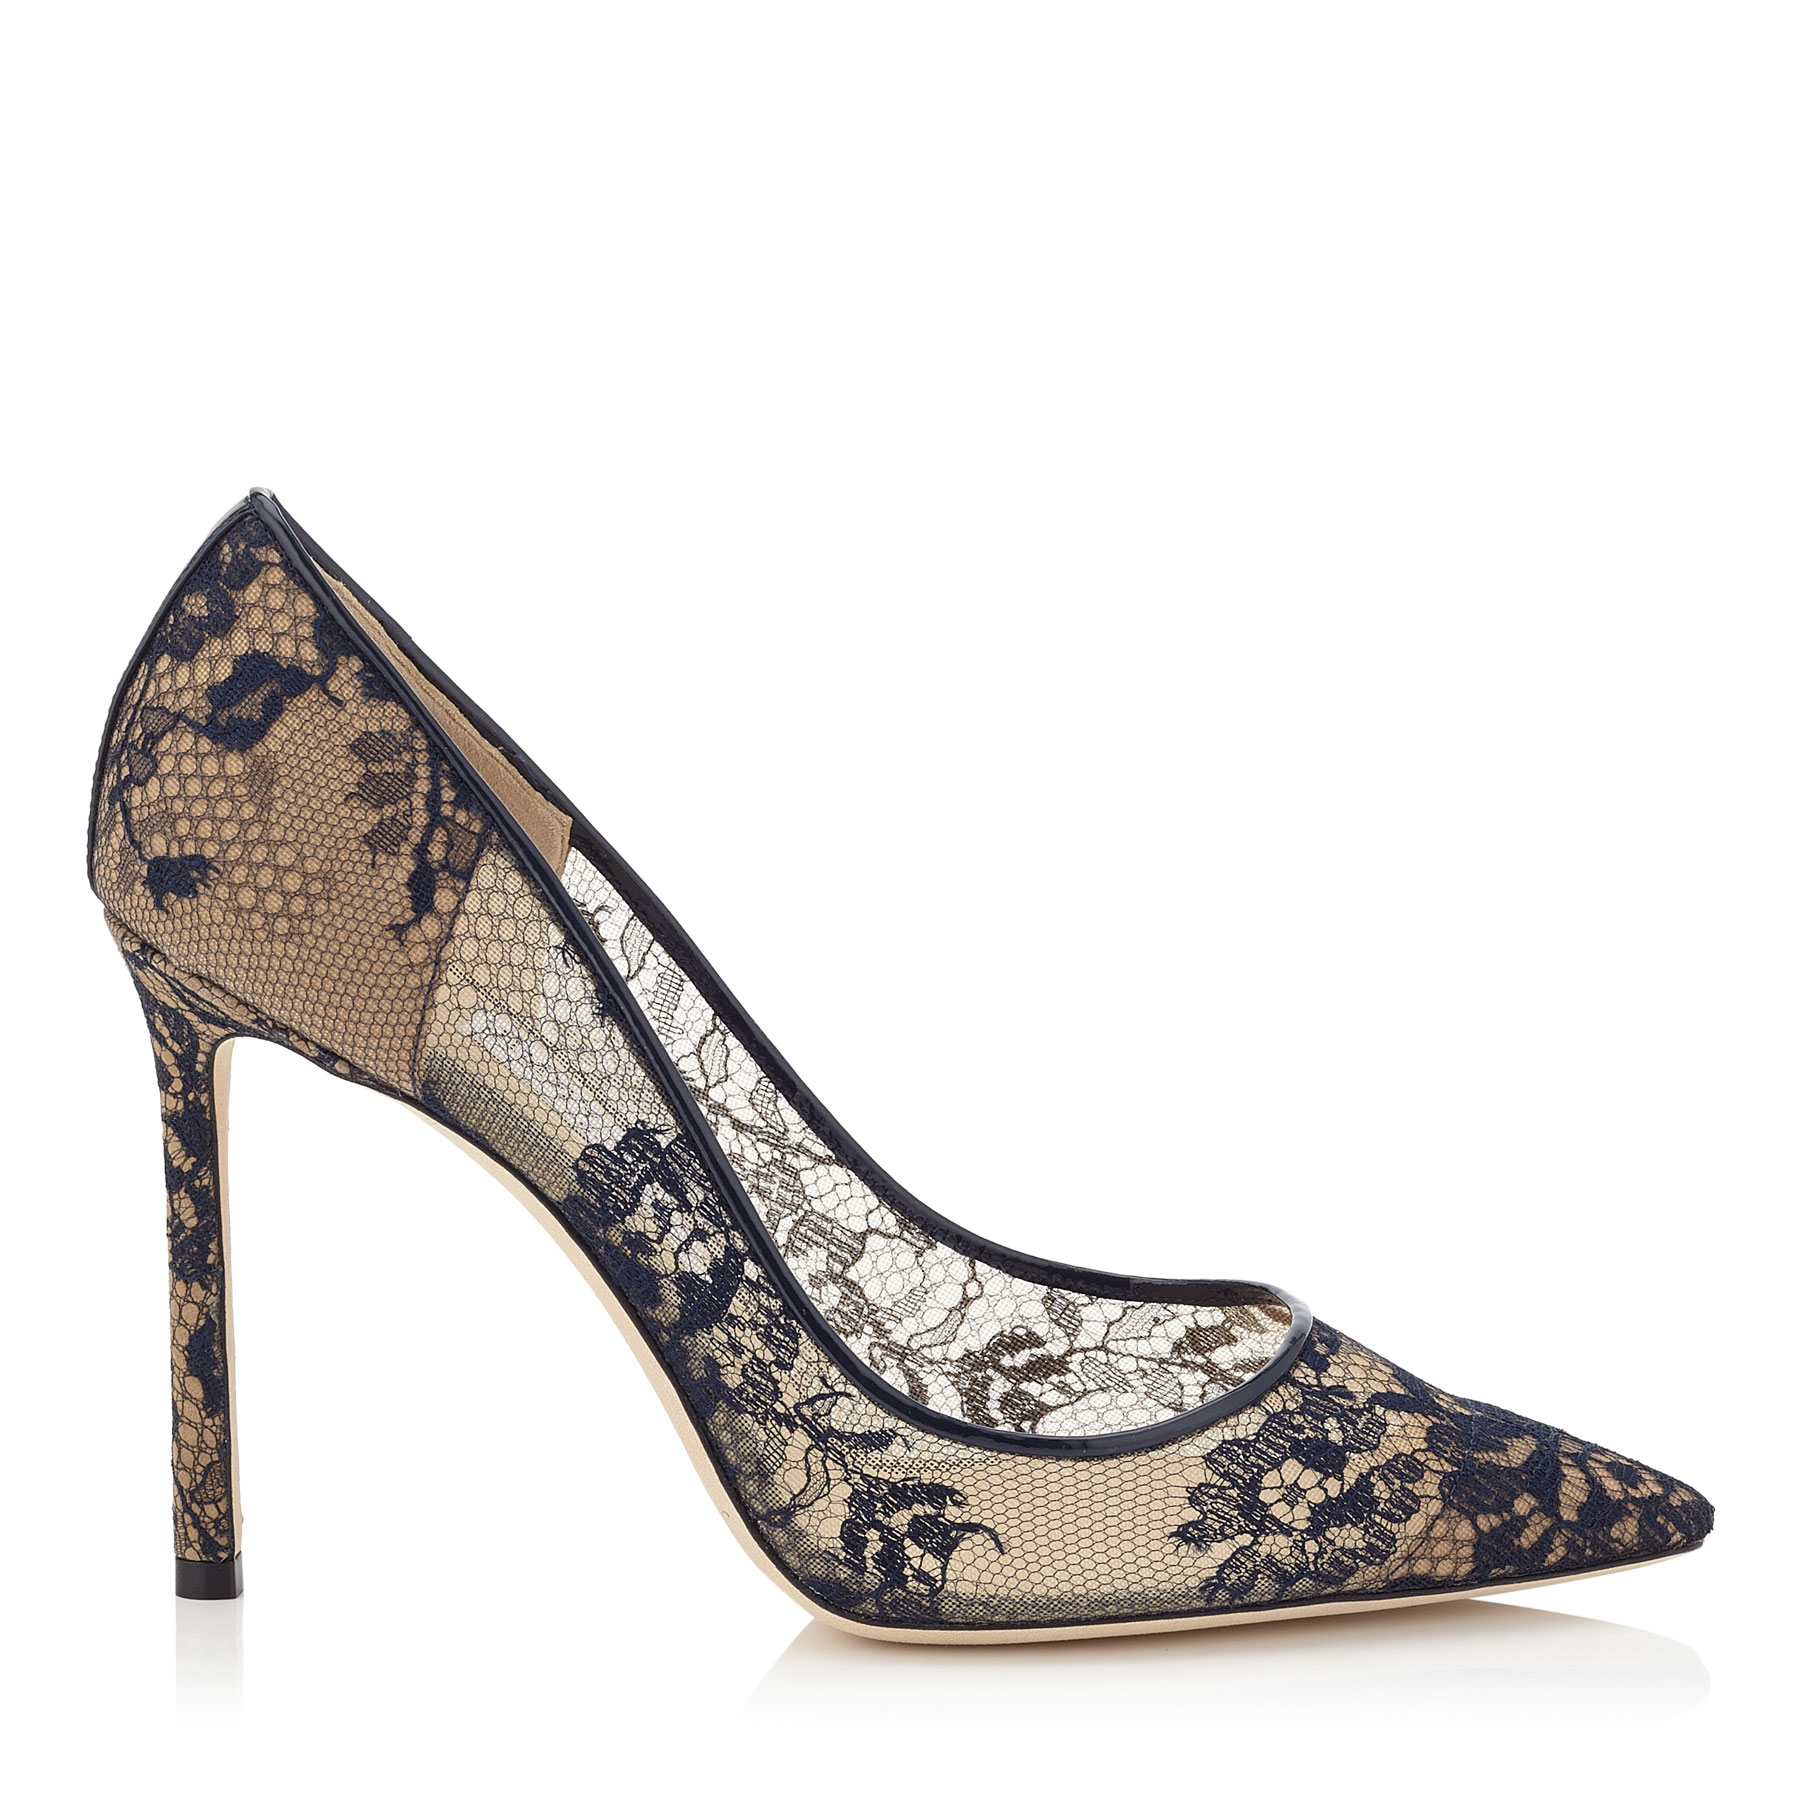 ROMY 100 Navy Lace Pointy Toe Pumps